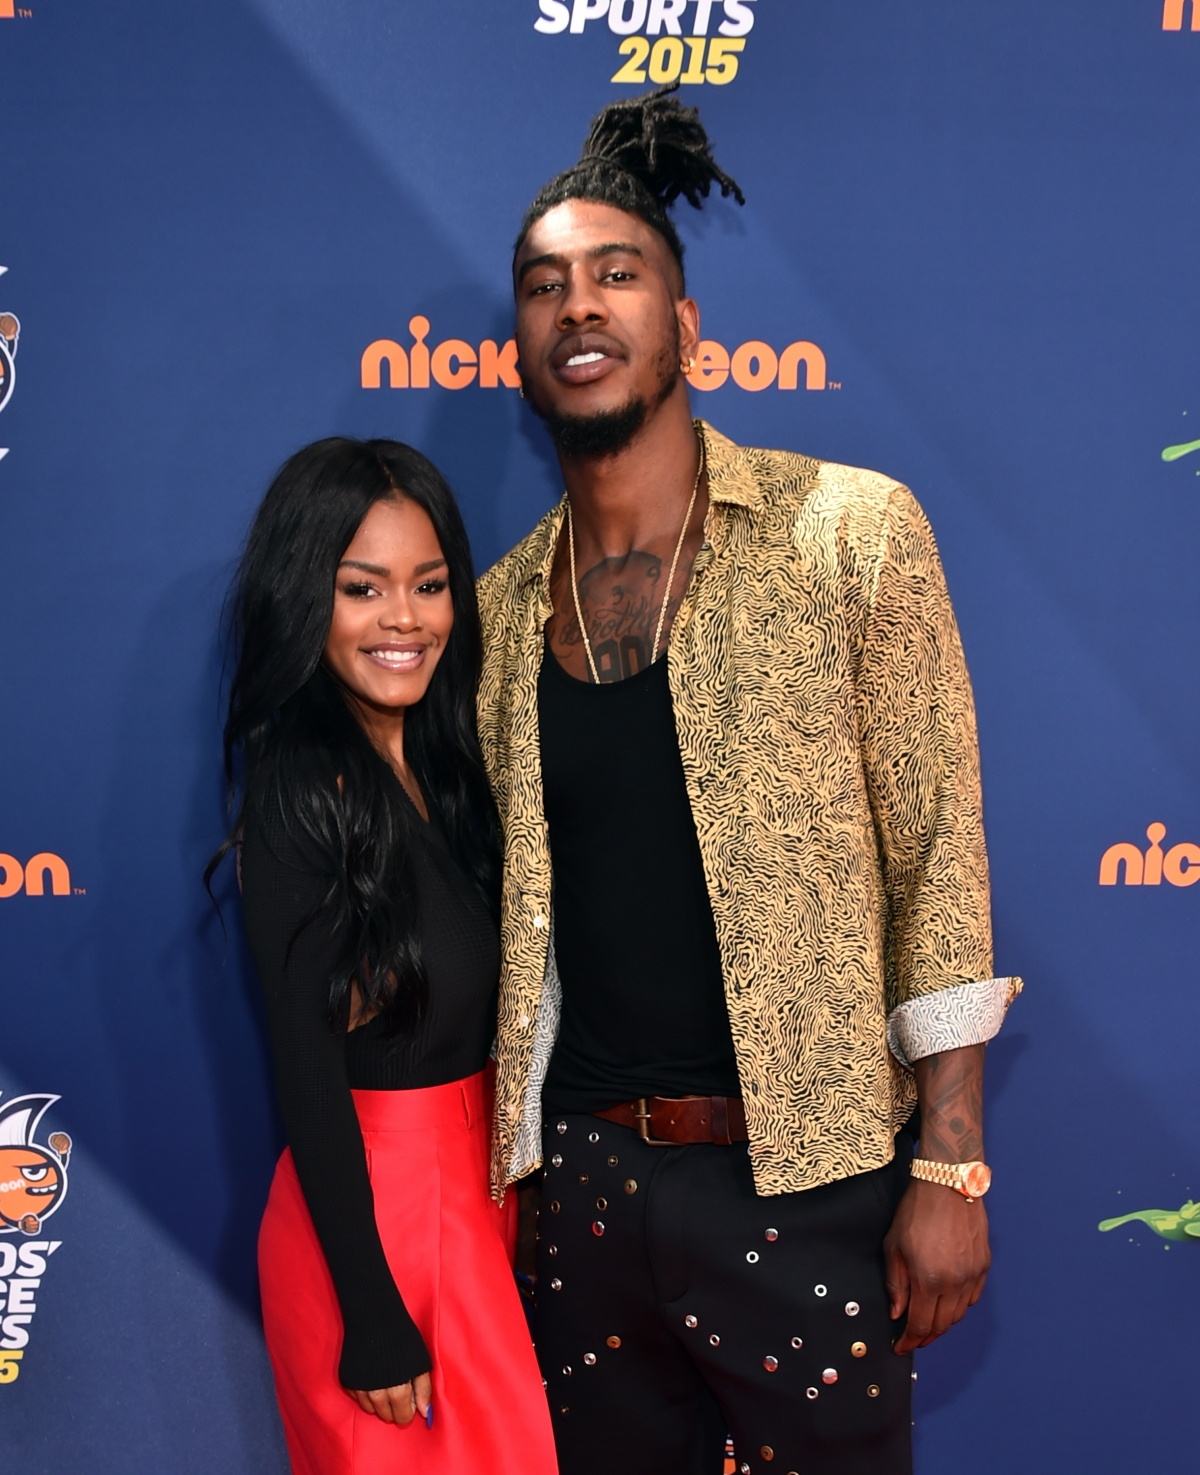 Teyana taylor dating basketball player